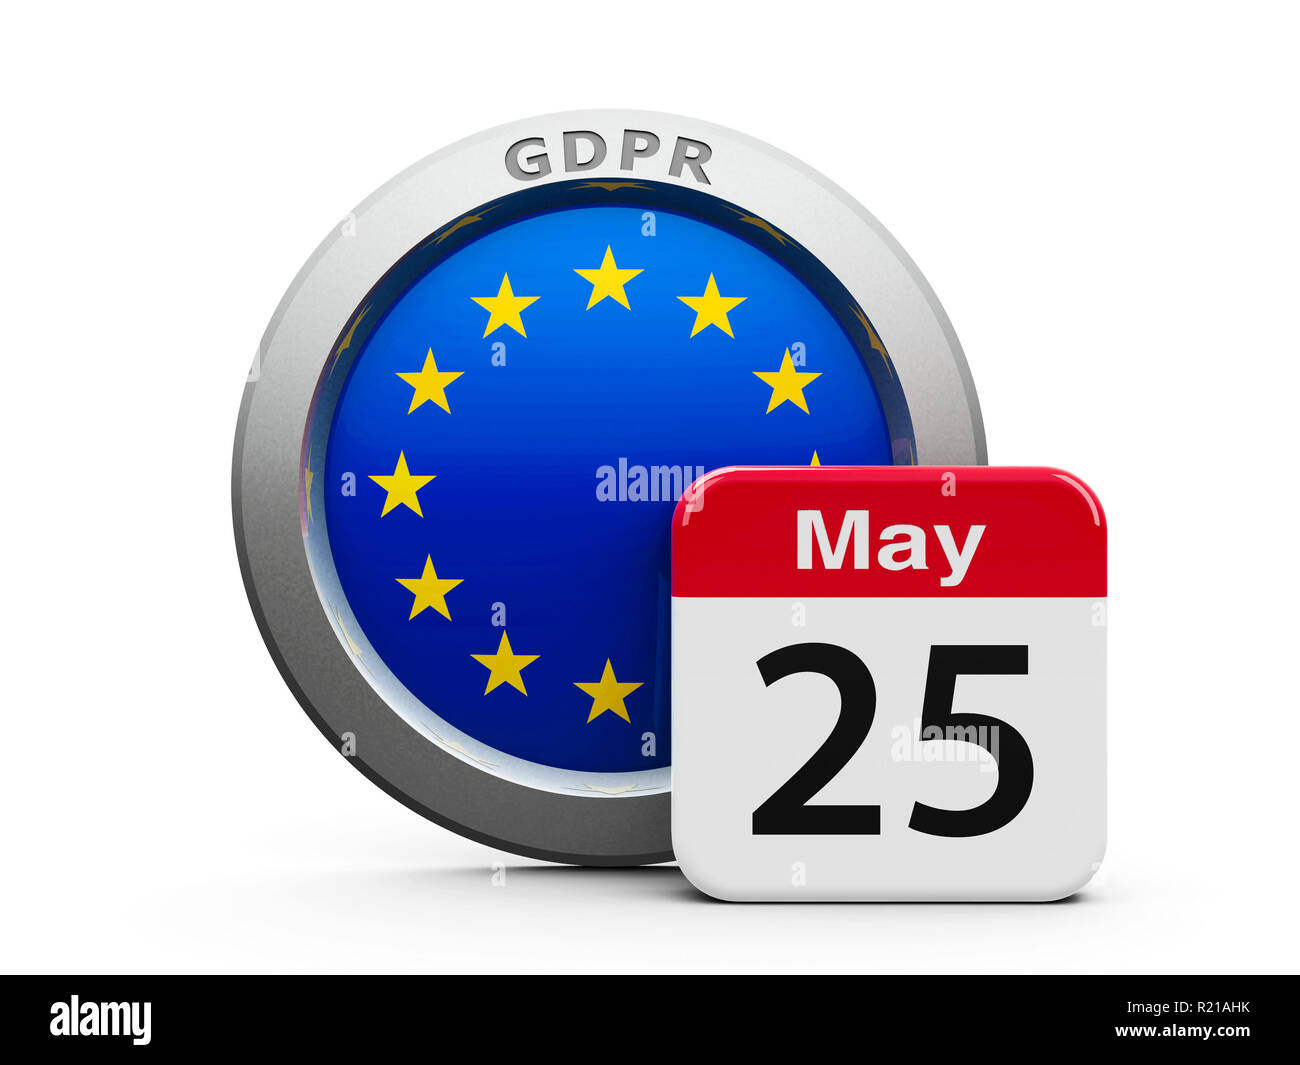 Emblem of European Union with calendar button - The Twenty Fifth of May - represents the Implementation date 2018 of GDPR - General Data Protection Re - Stock Image